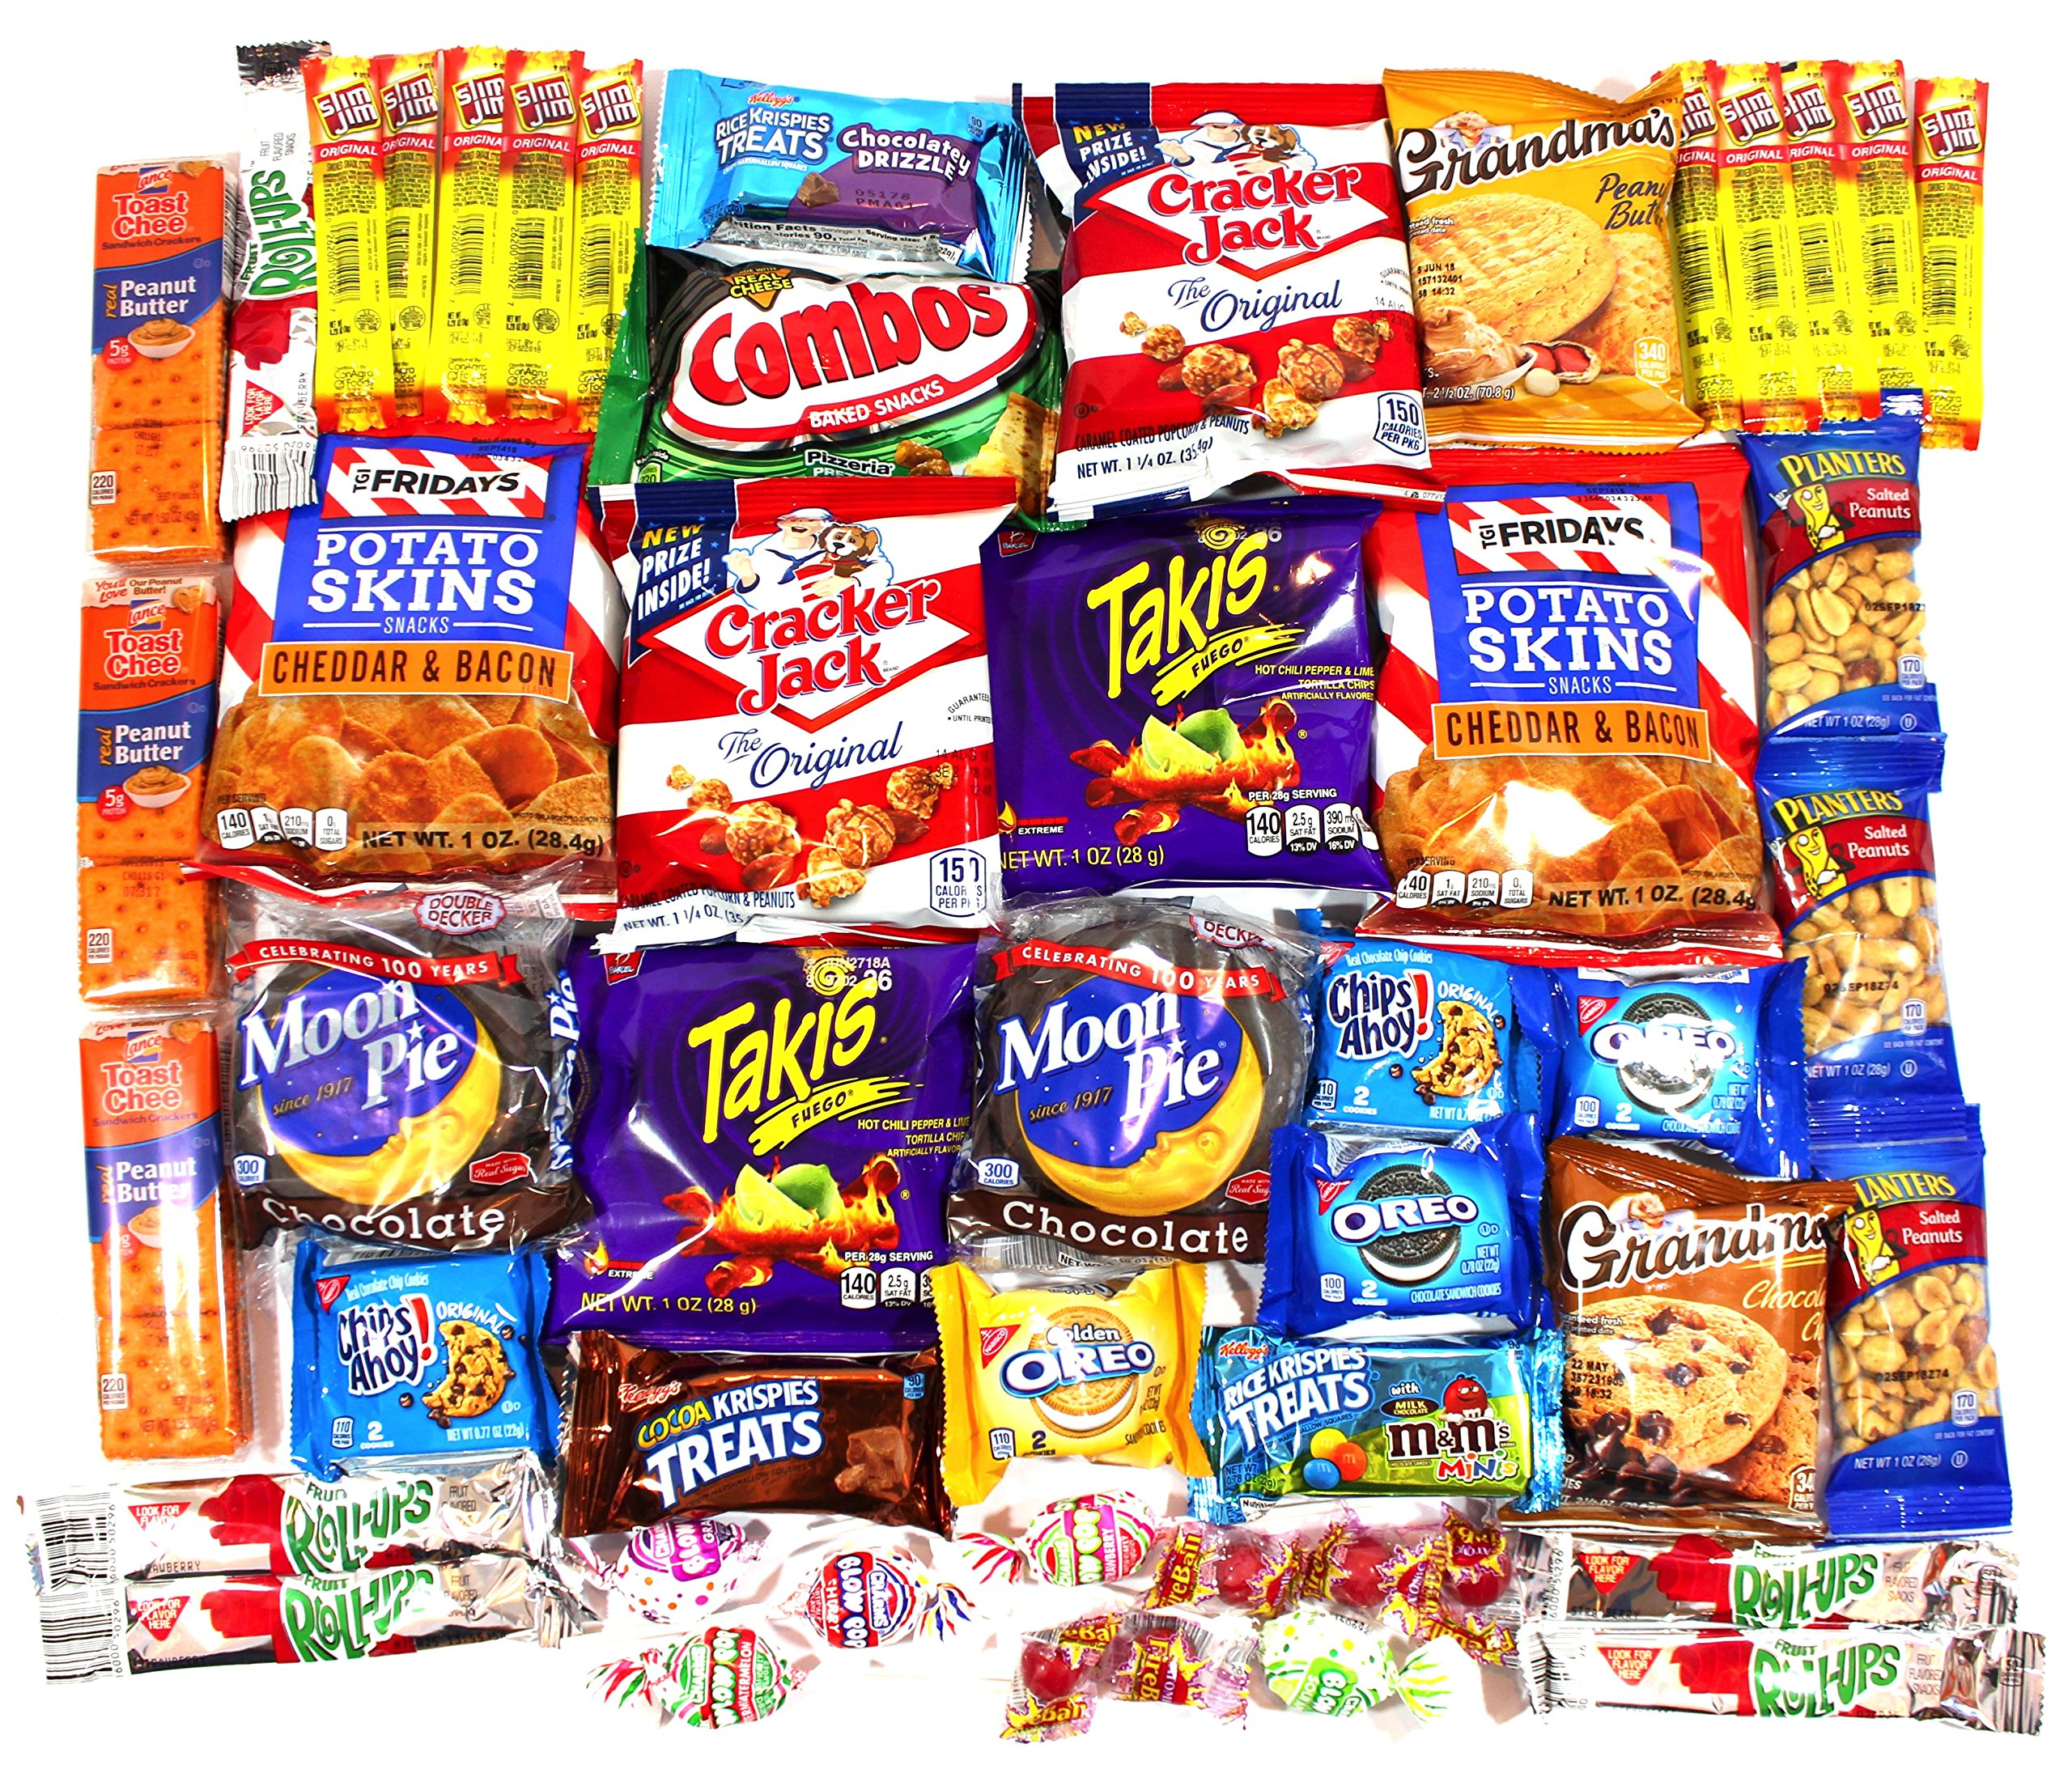 Cookies Chips & Candies Variety Pack Bundle Assortment Includes: Takis, Moon Pies, Potato Skins, Cracker Jacks and More! Box of 50 Items